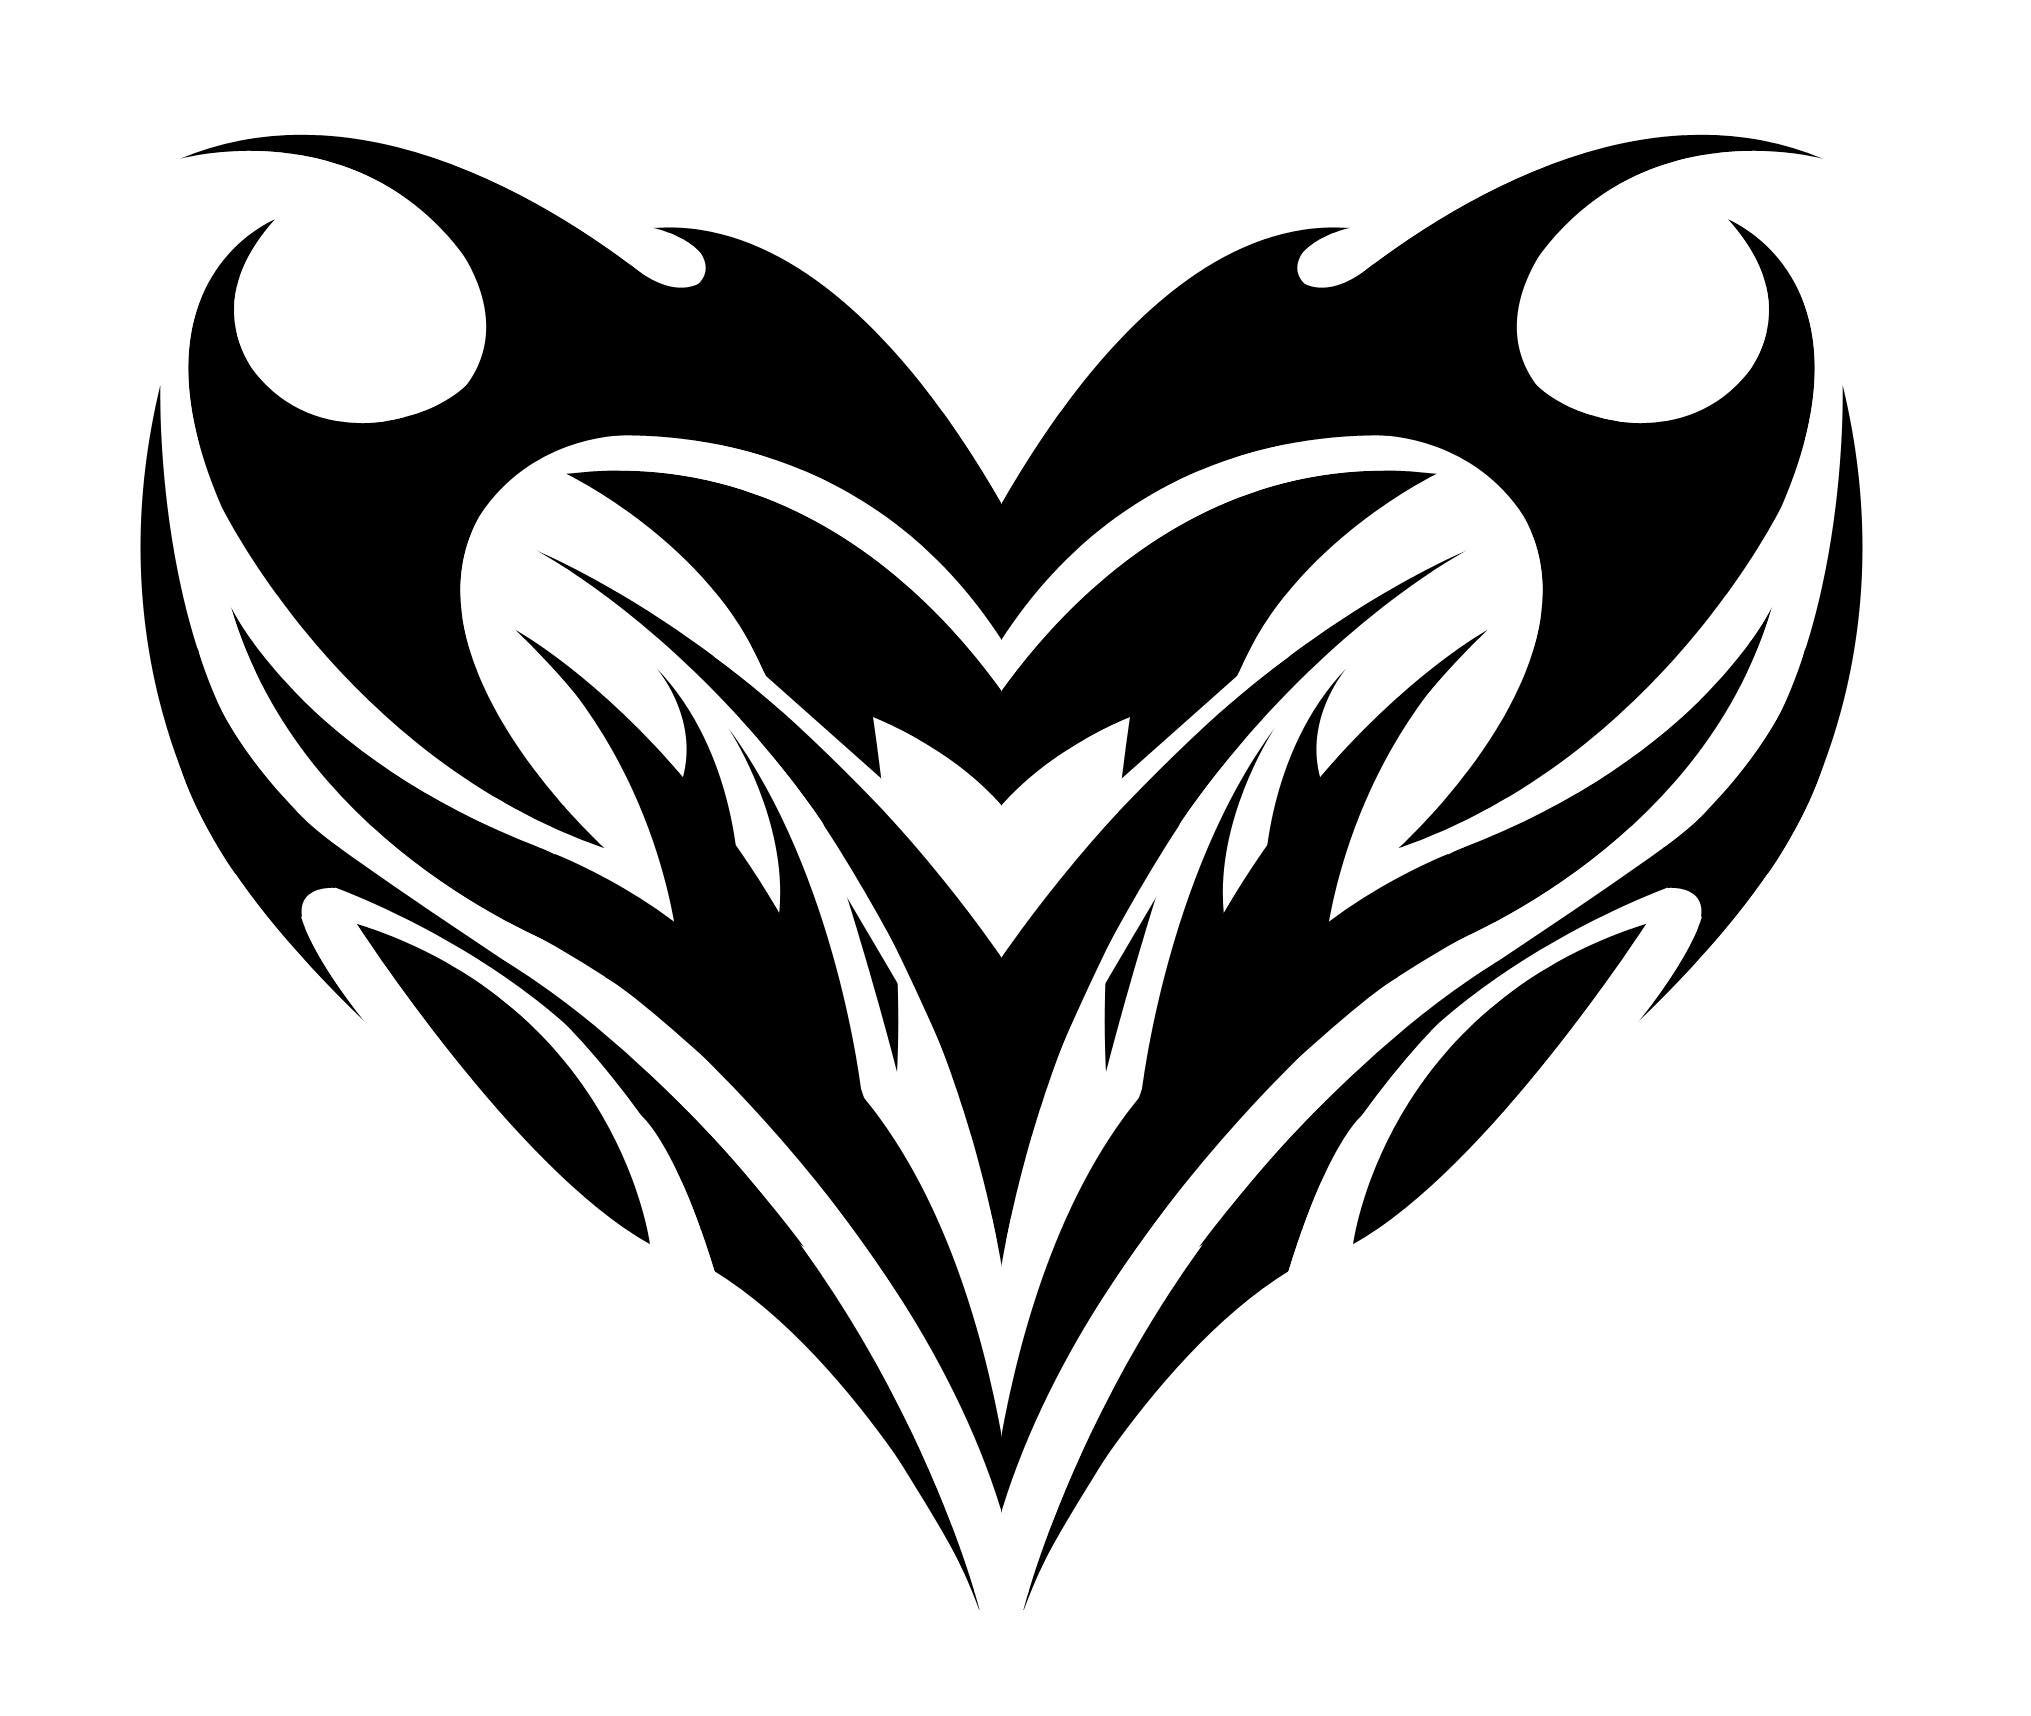 Drawings Of Tribal Hearts Tribal Heart Drawings ...